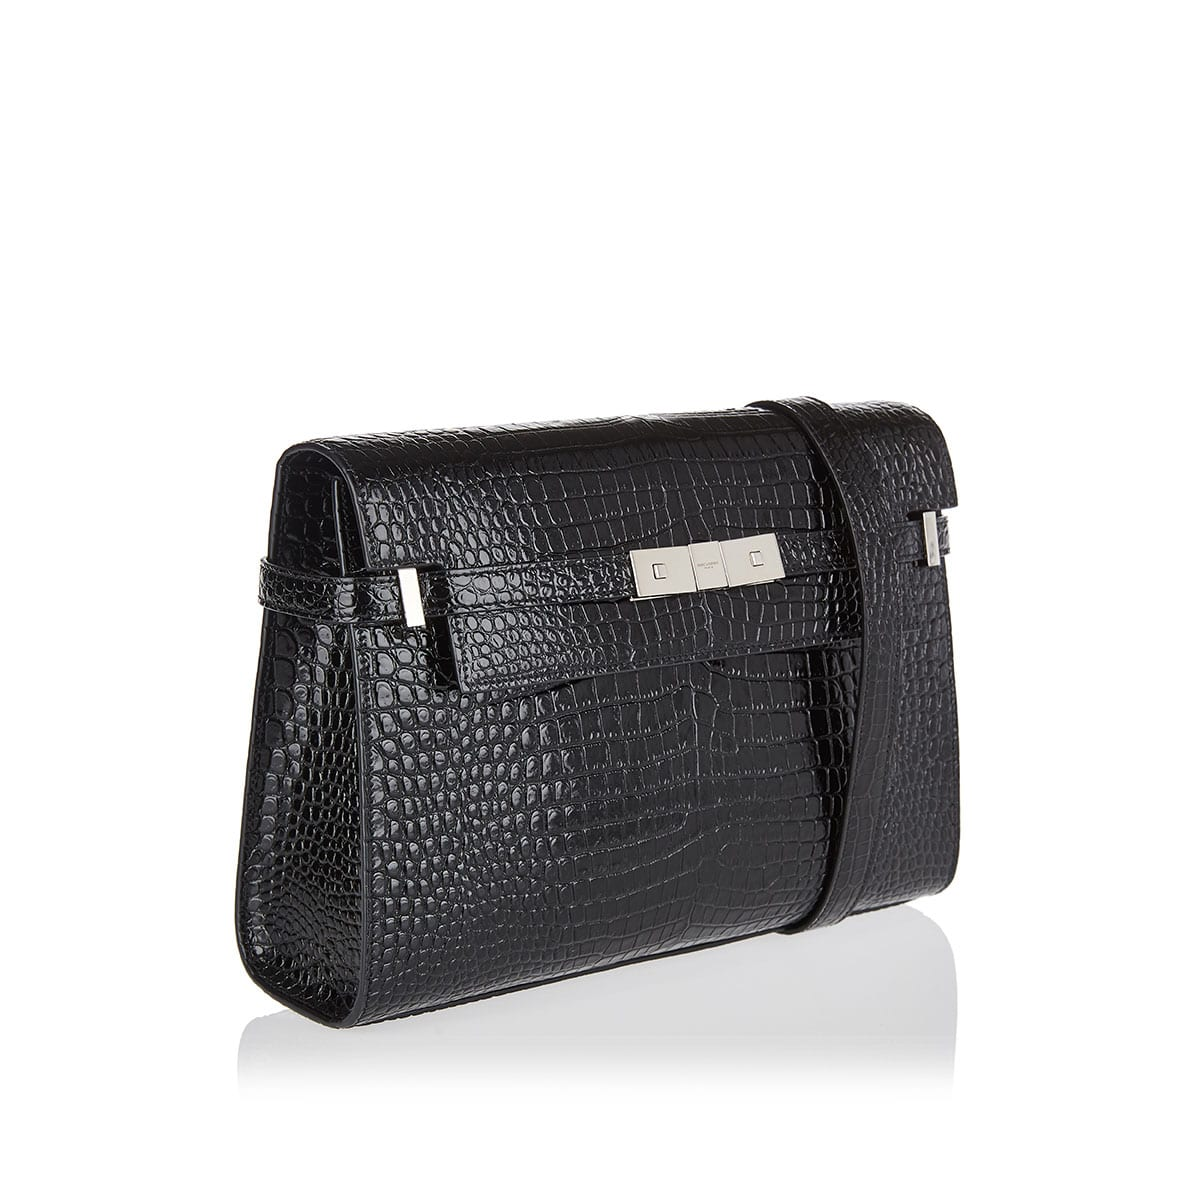 Manhattan croc-efect baguette bag